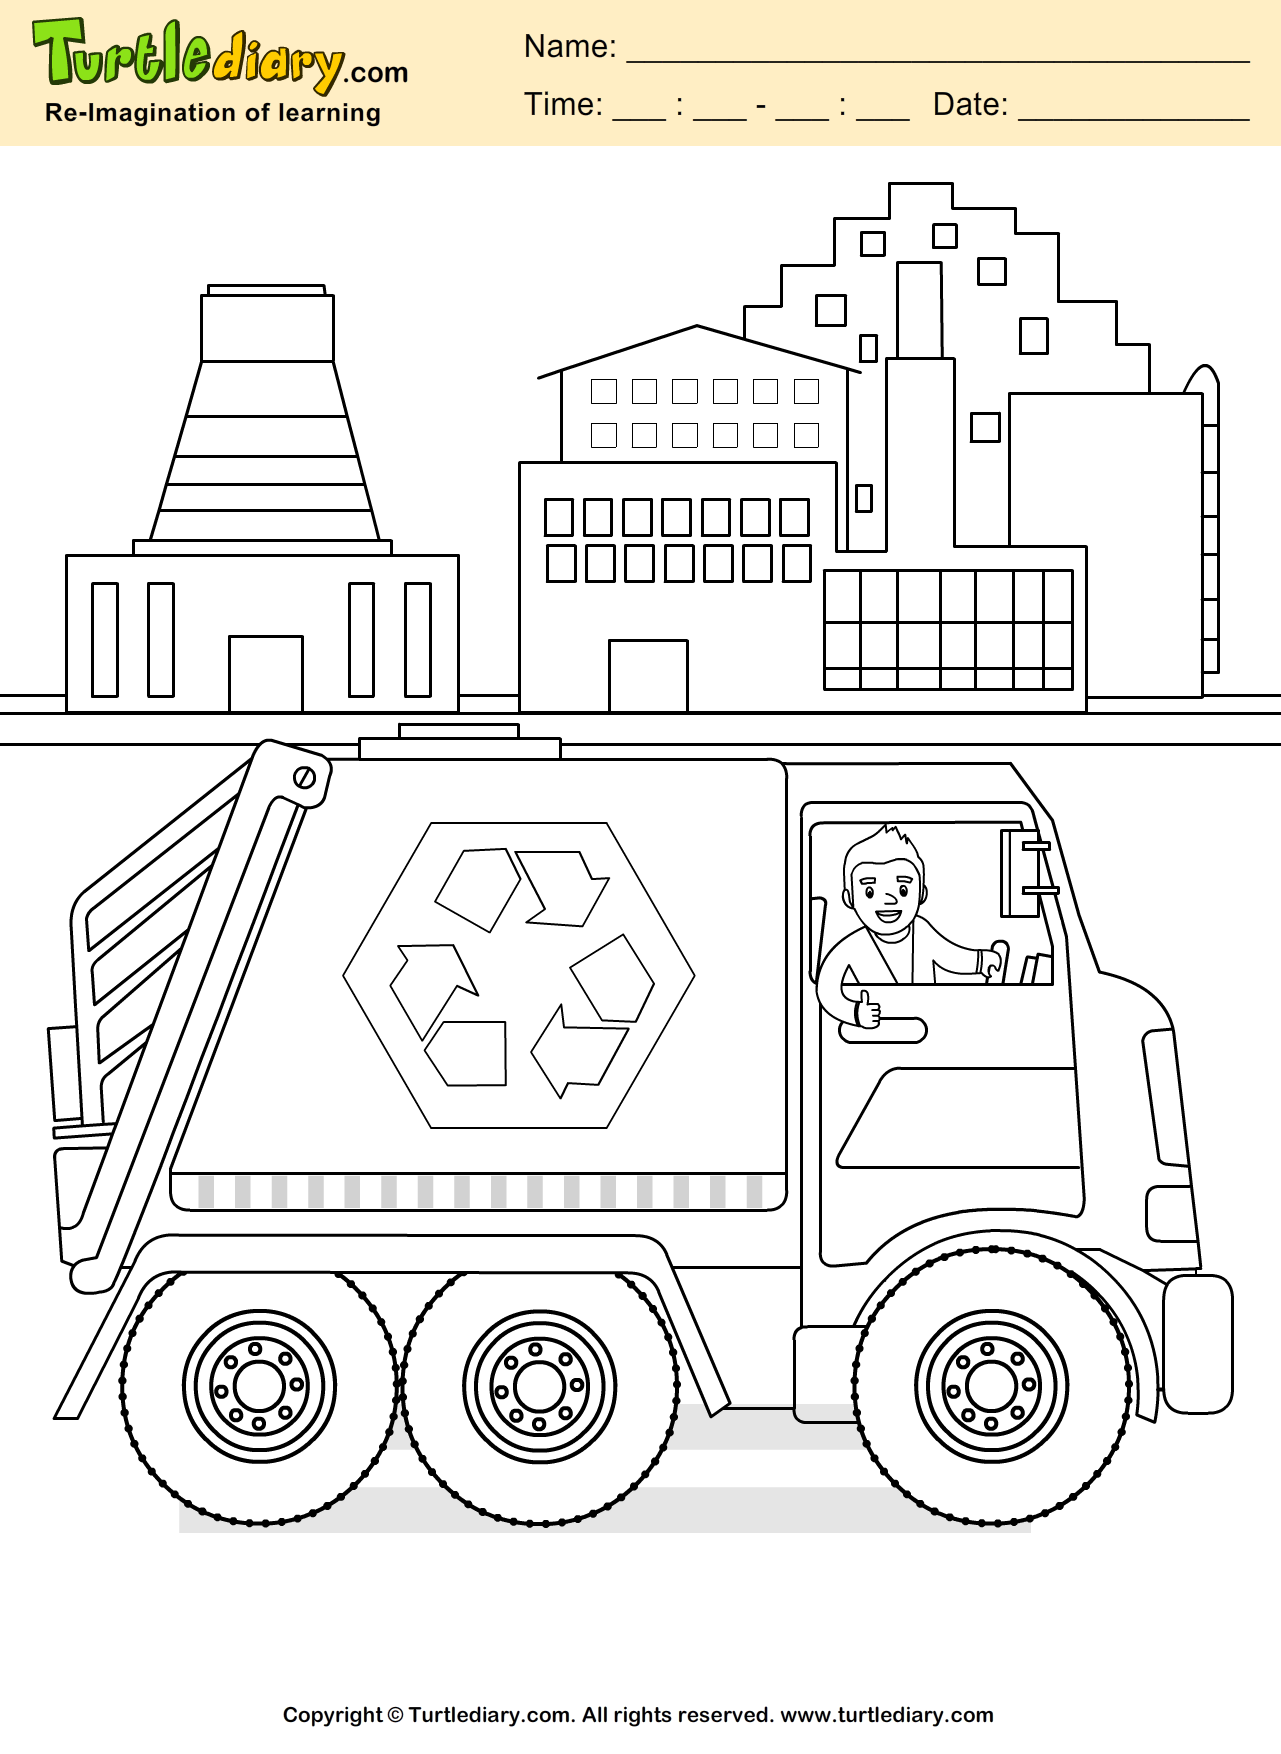 earth day recycling coloring page kids crafts coloring turtlediary childeducation - Recycling Coloring Pages Kids